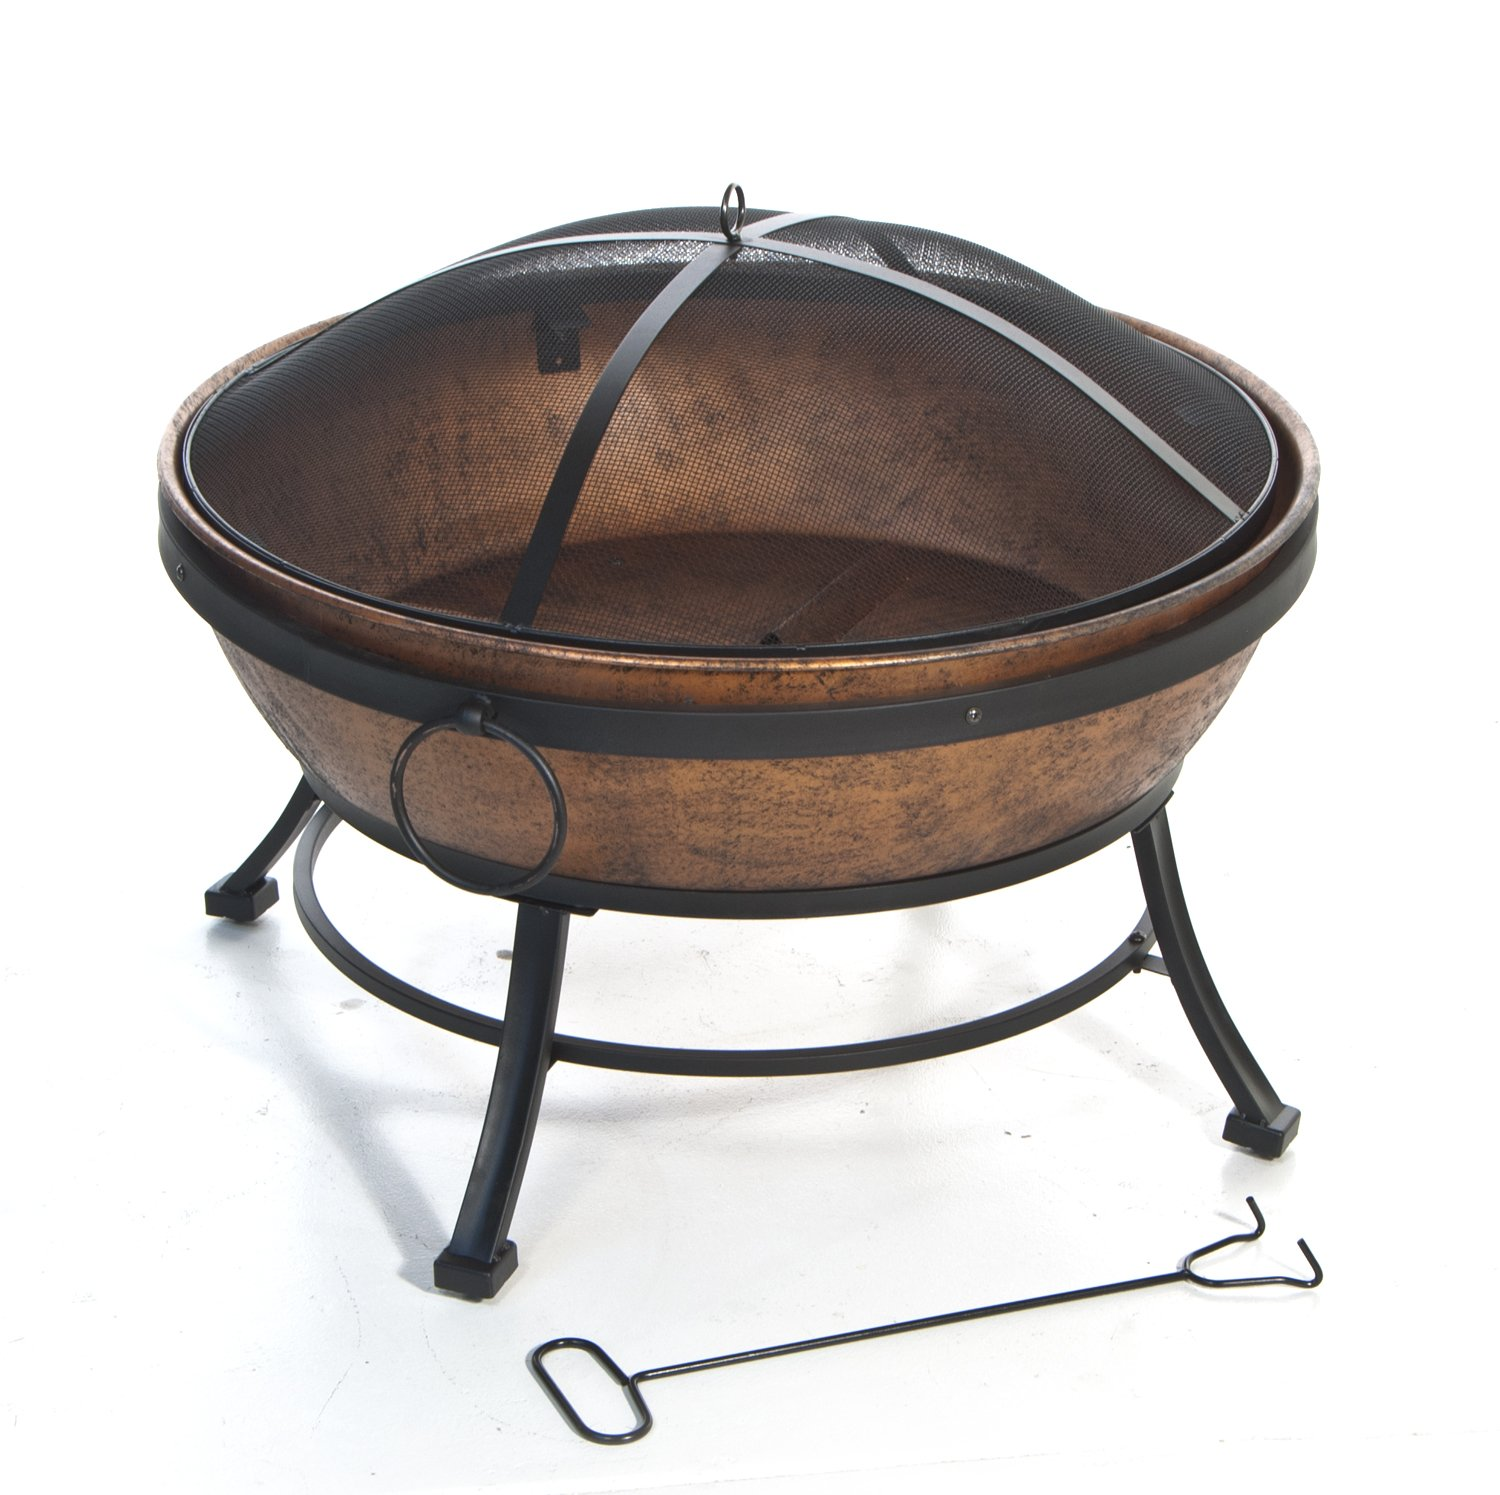 DeckMate 991049 Kay Home Product'S Avondale Steel Fire Bowl, Copper Colored by DeckMate